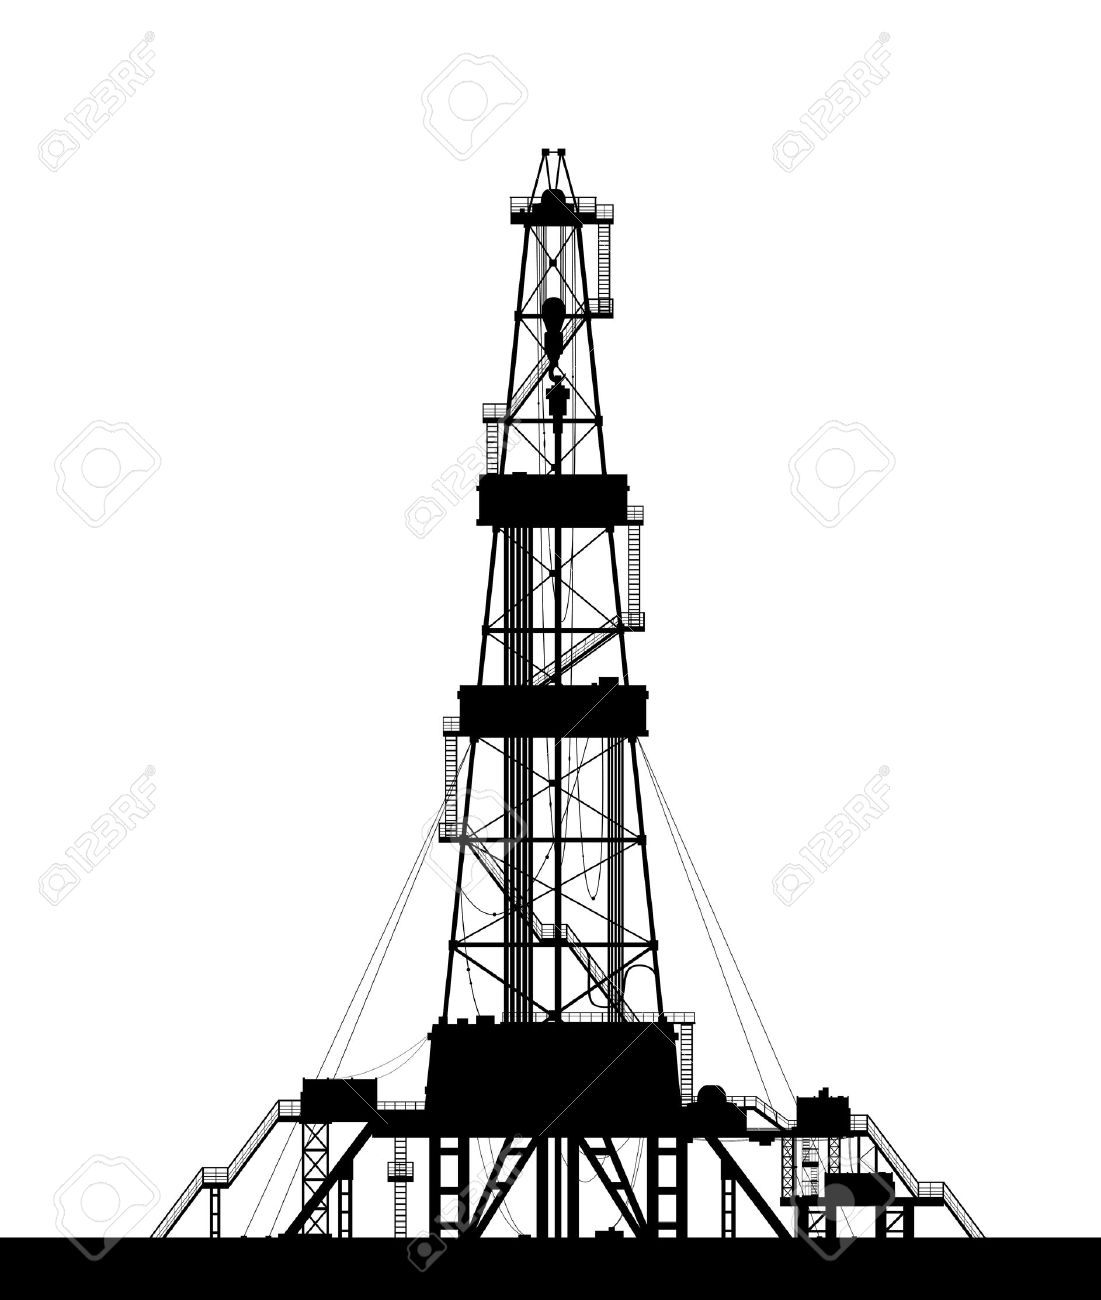 Oil rig silhouette  Detailed vector illustration isolated on